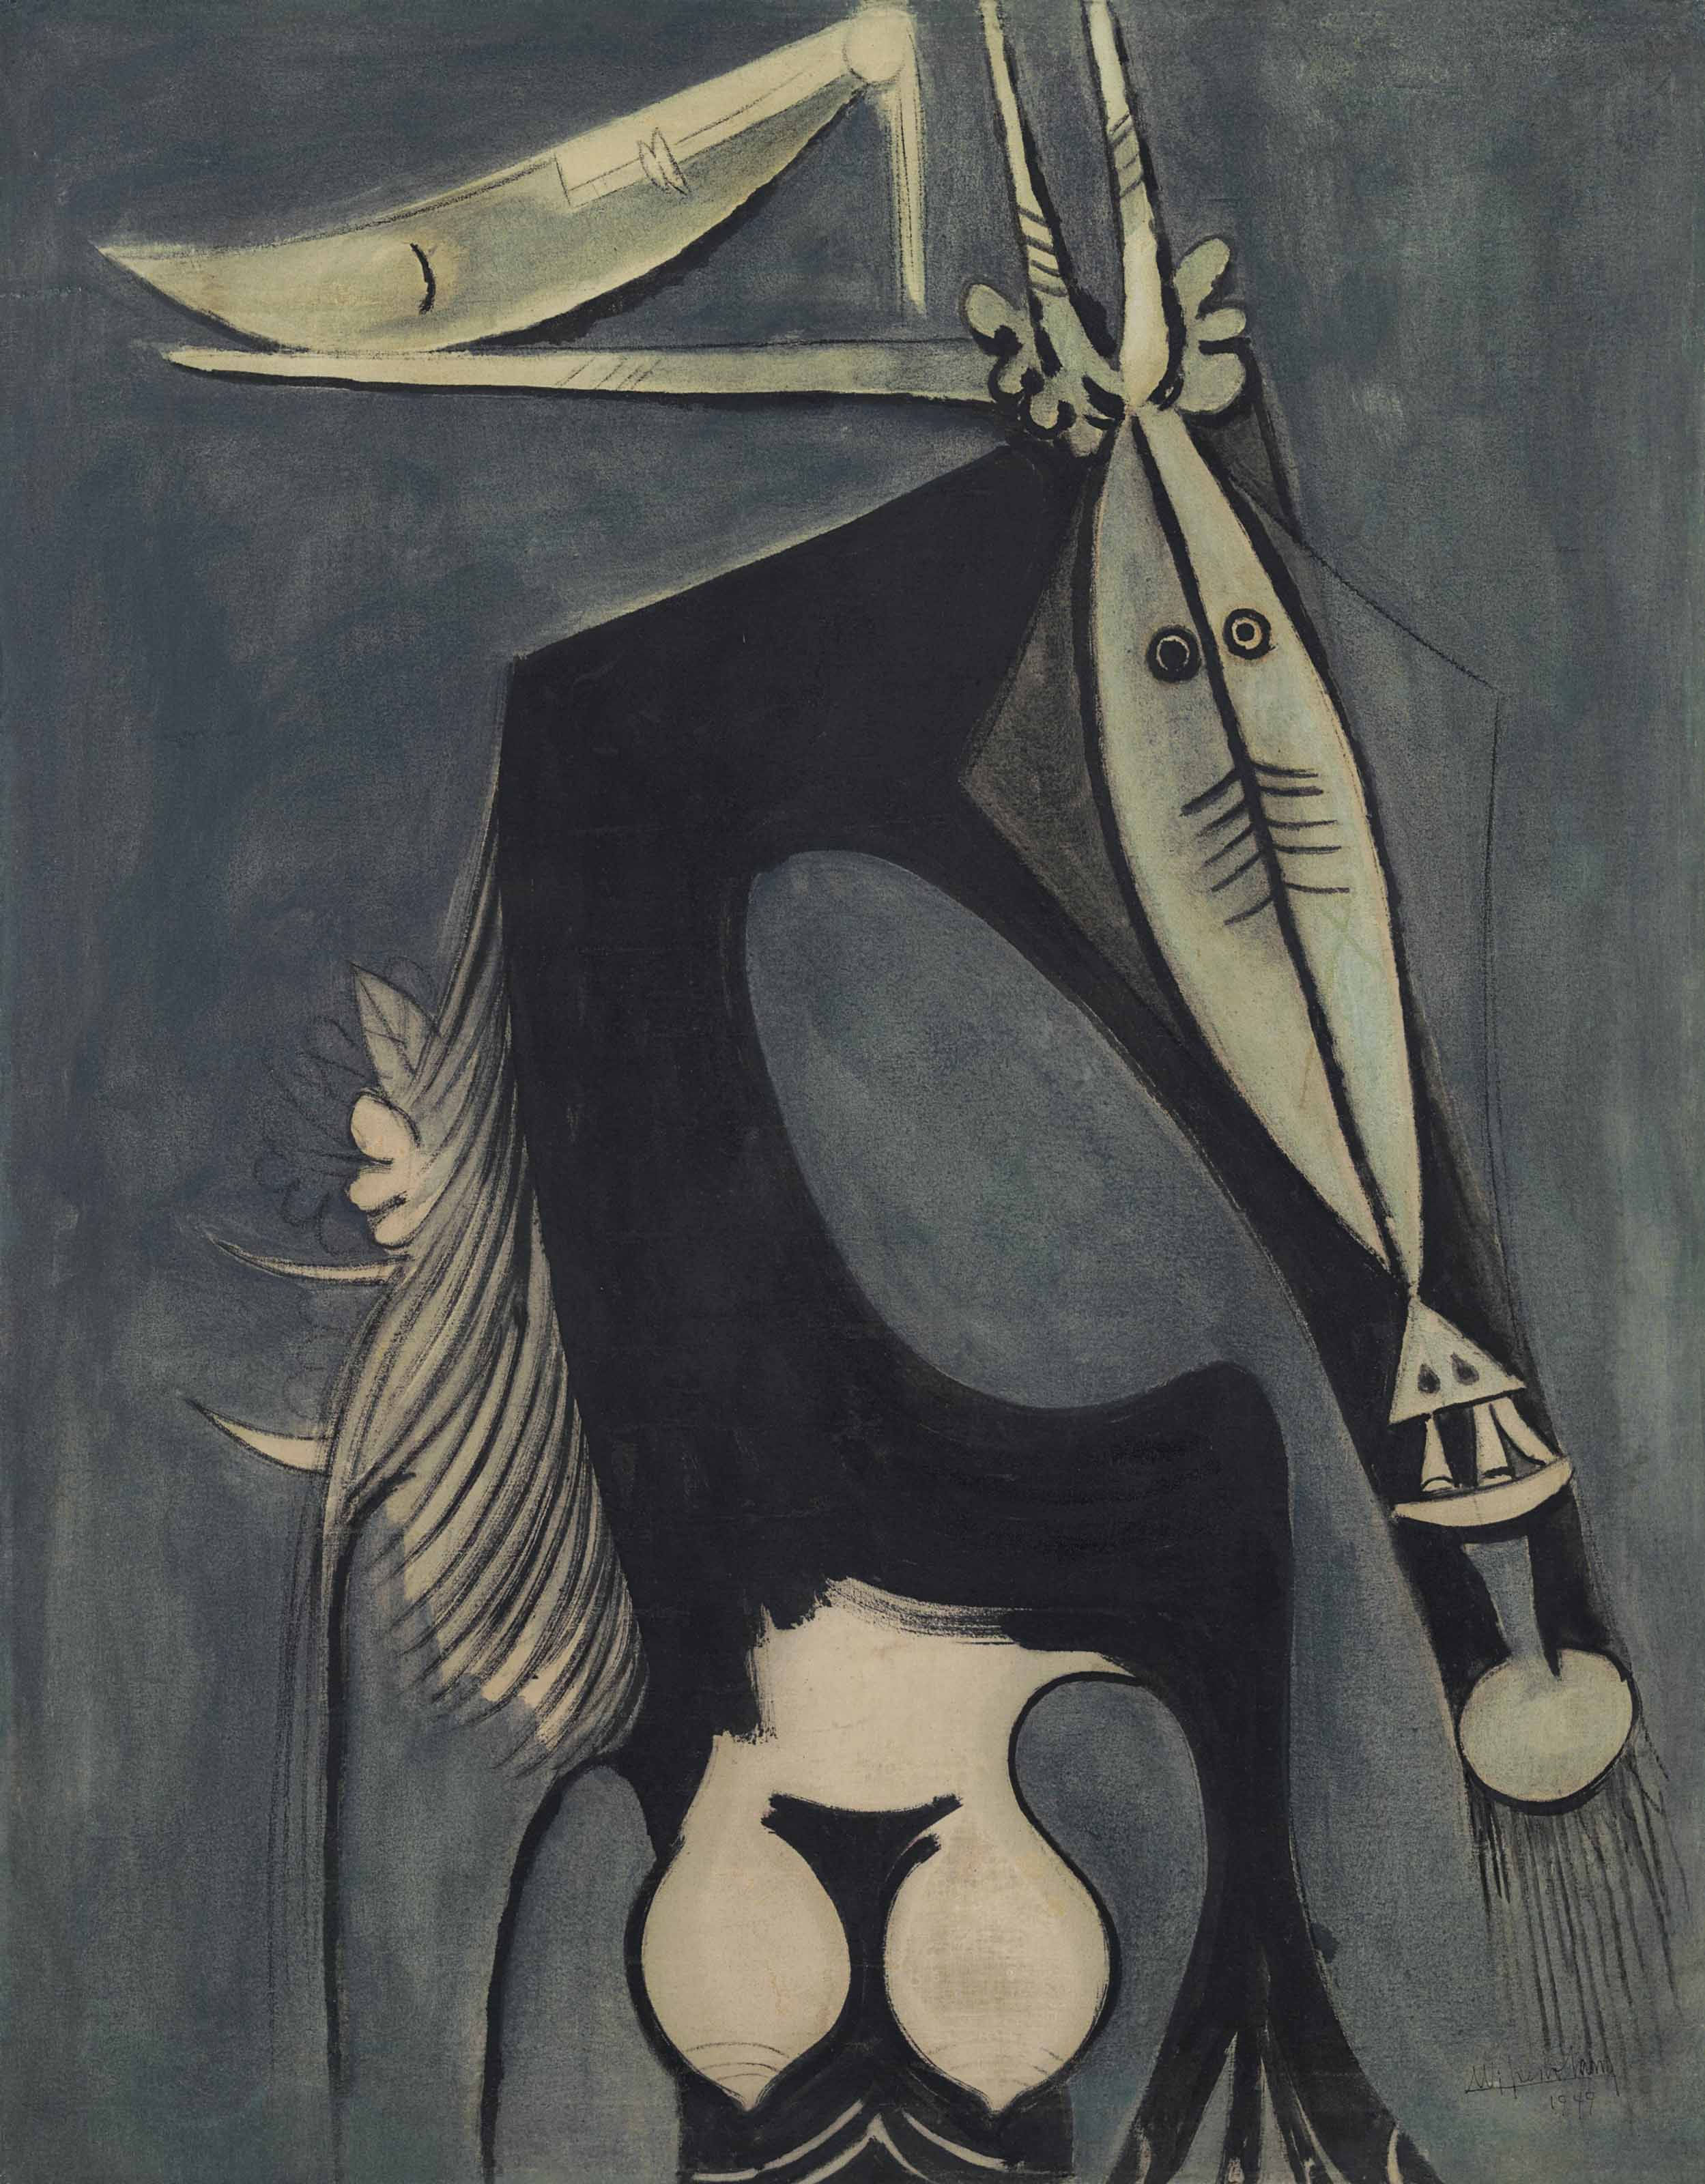 Wifredo Lam (1902-1982), Figure, 1949. 42½ x 33½  in (108 x 85.1  cm). Estimate $1,200,000-1,800,000. Offered in Latin American Art on 23-24 May at Christie's in New York